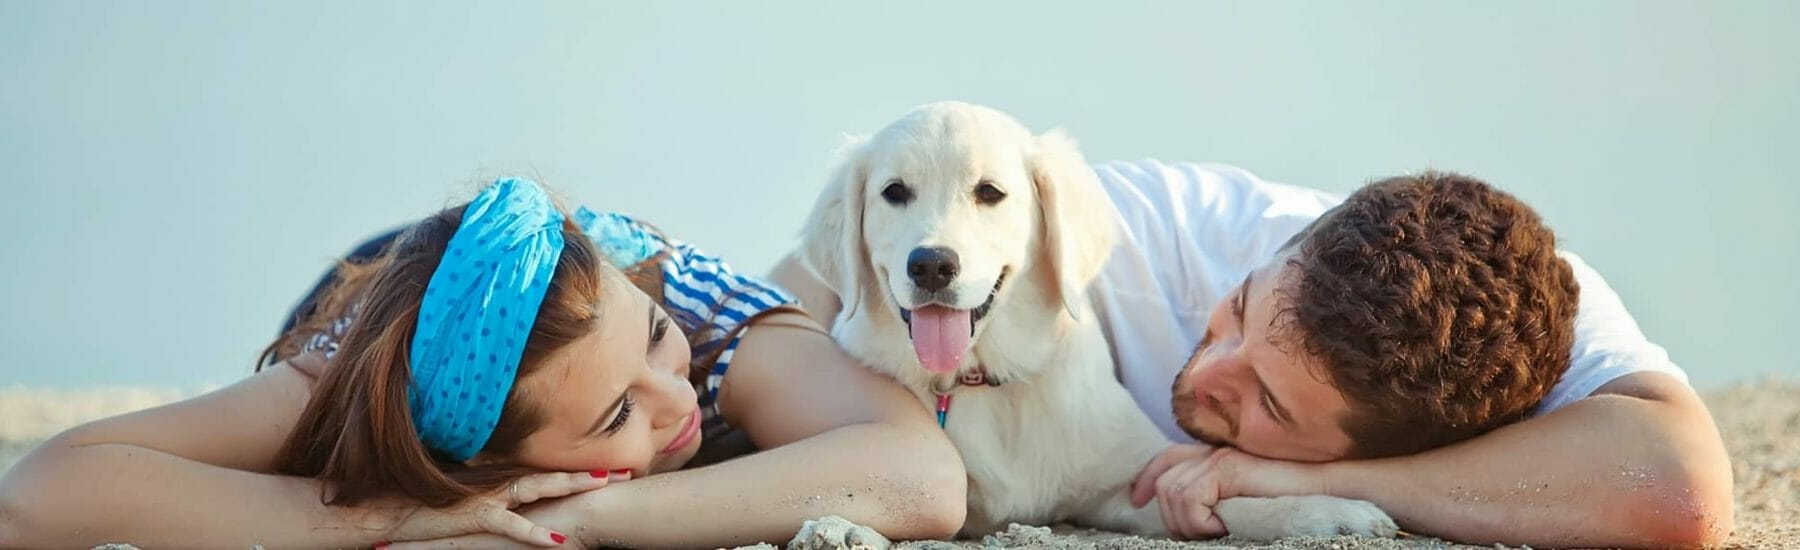 White dog laying between male and female on the beach